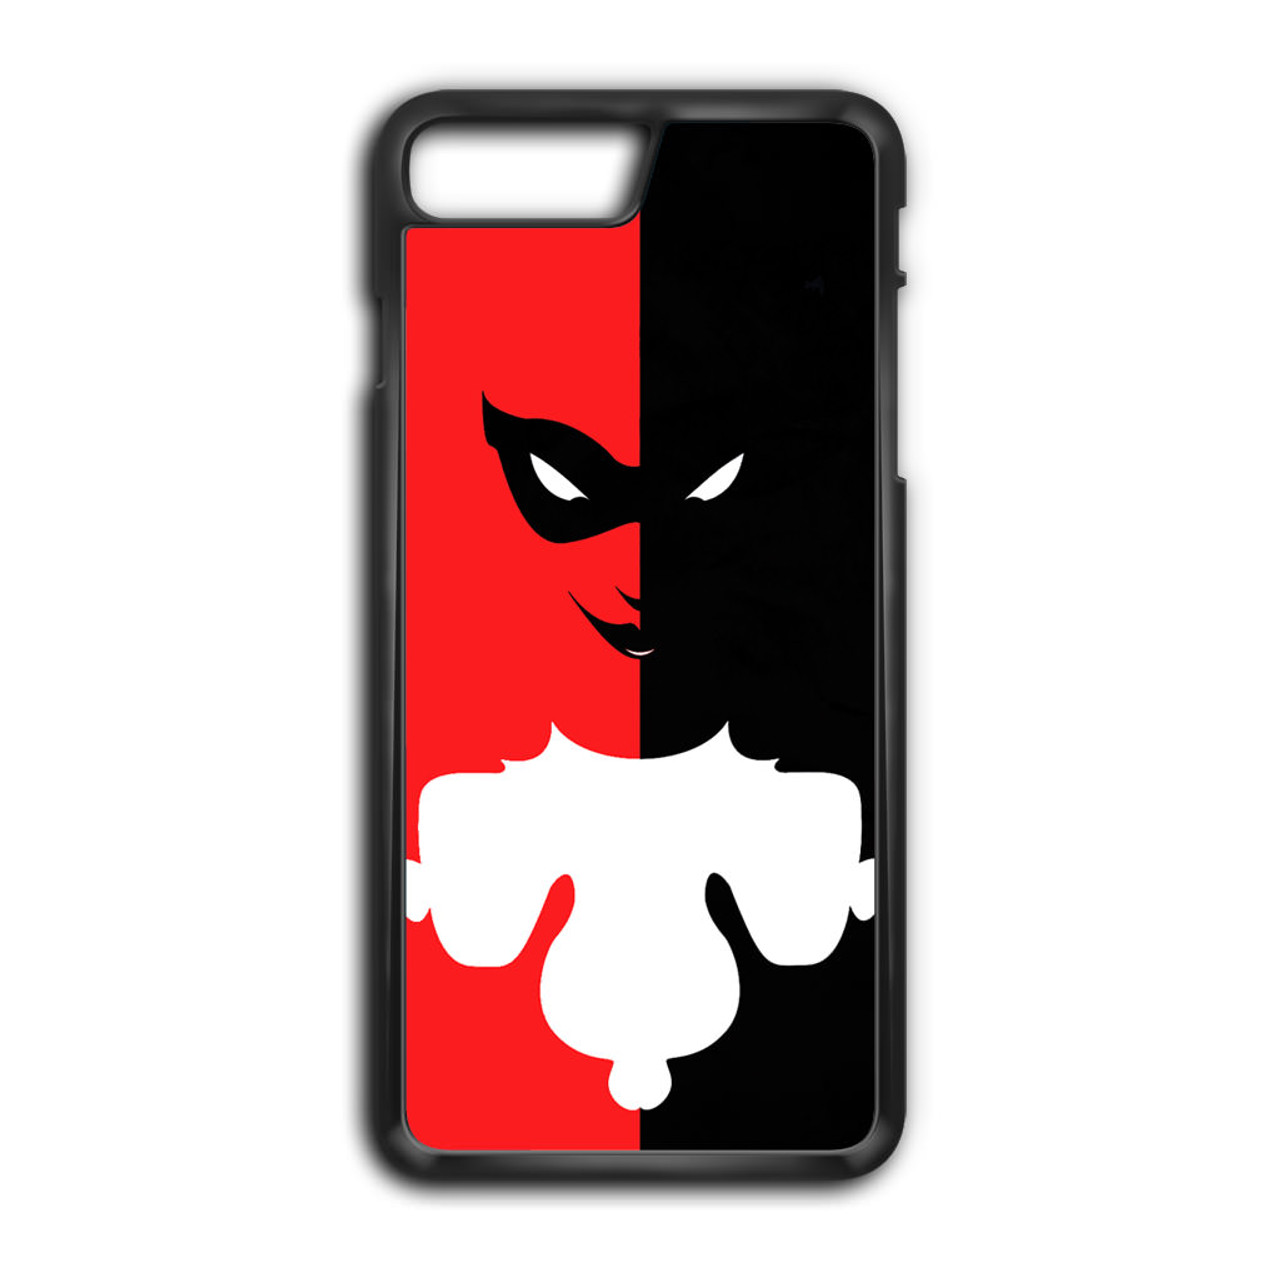 Noble Harley Quinn Custom Iphone Case Harley Quinn Custom Iphone Case Caseshunter Custom Iphone 7 Case Lifeproof Custom Iphone 7 Cases Bulk custom Custom Iphone 7 Case